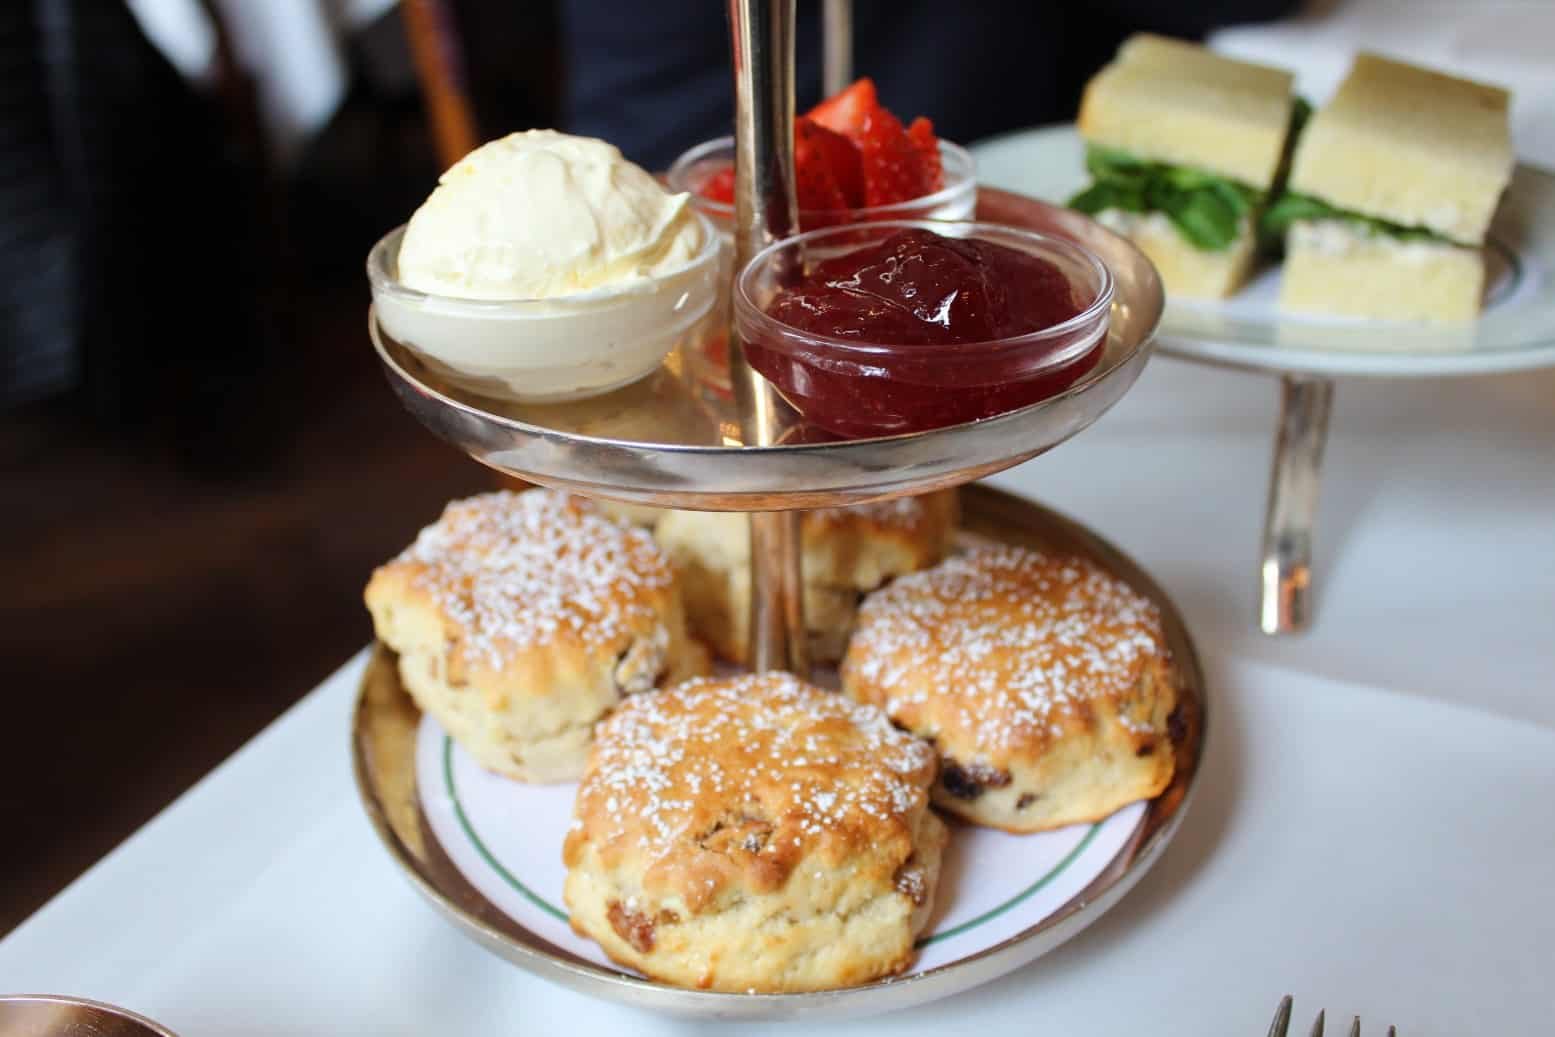 Afternoon Tea in York – 9 of the Best Places with Reviews!